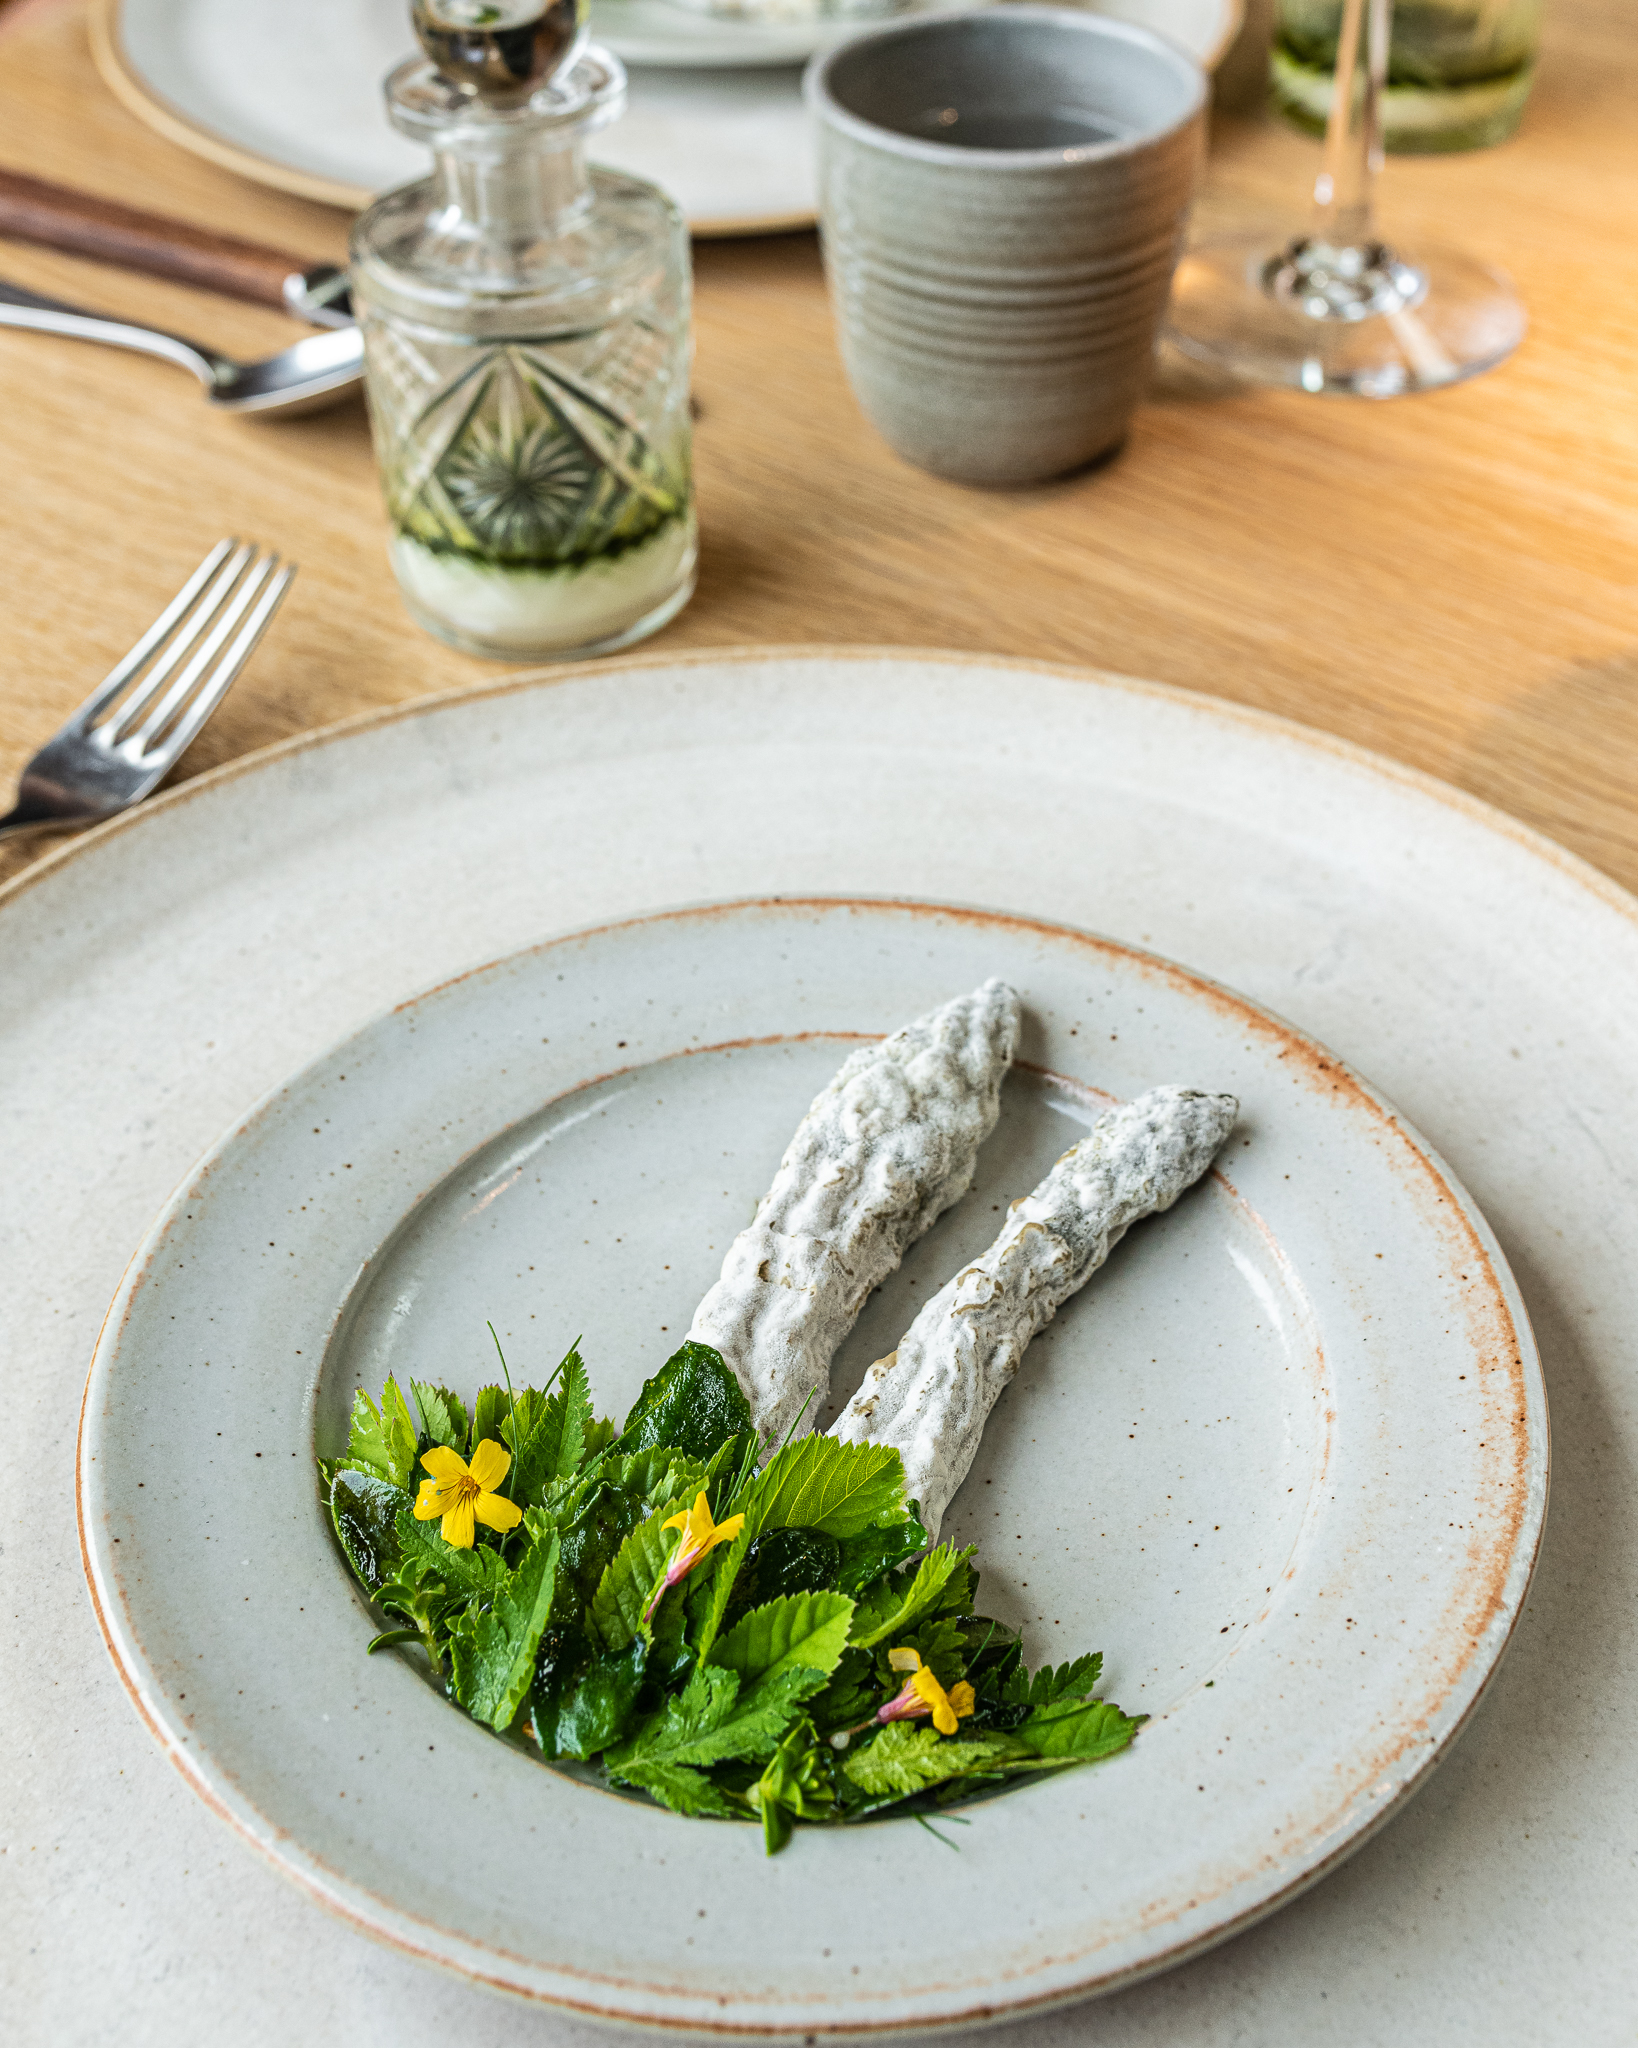 Green Asparagus Preserved in Mold